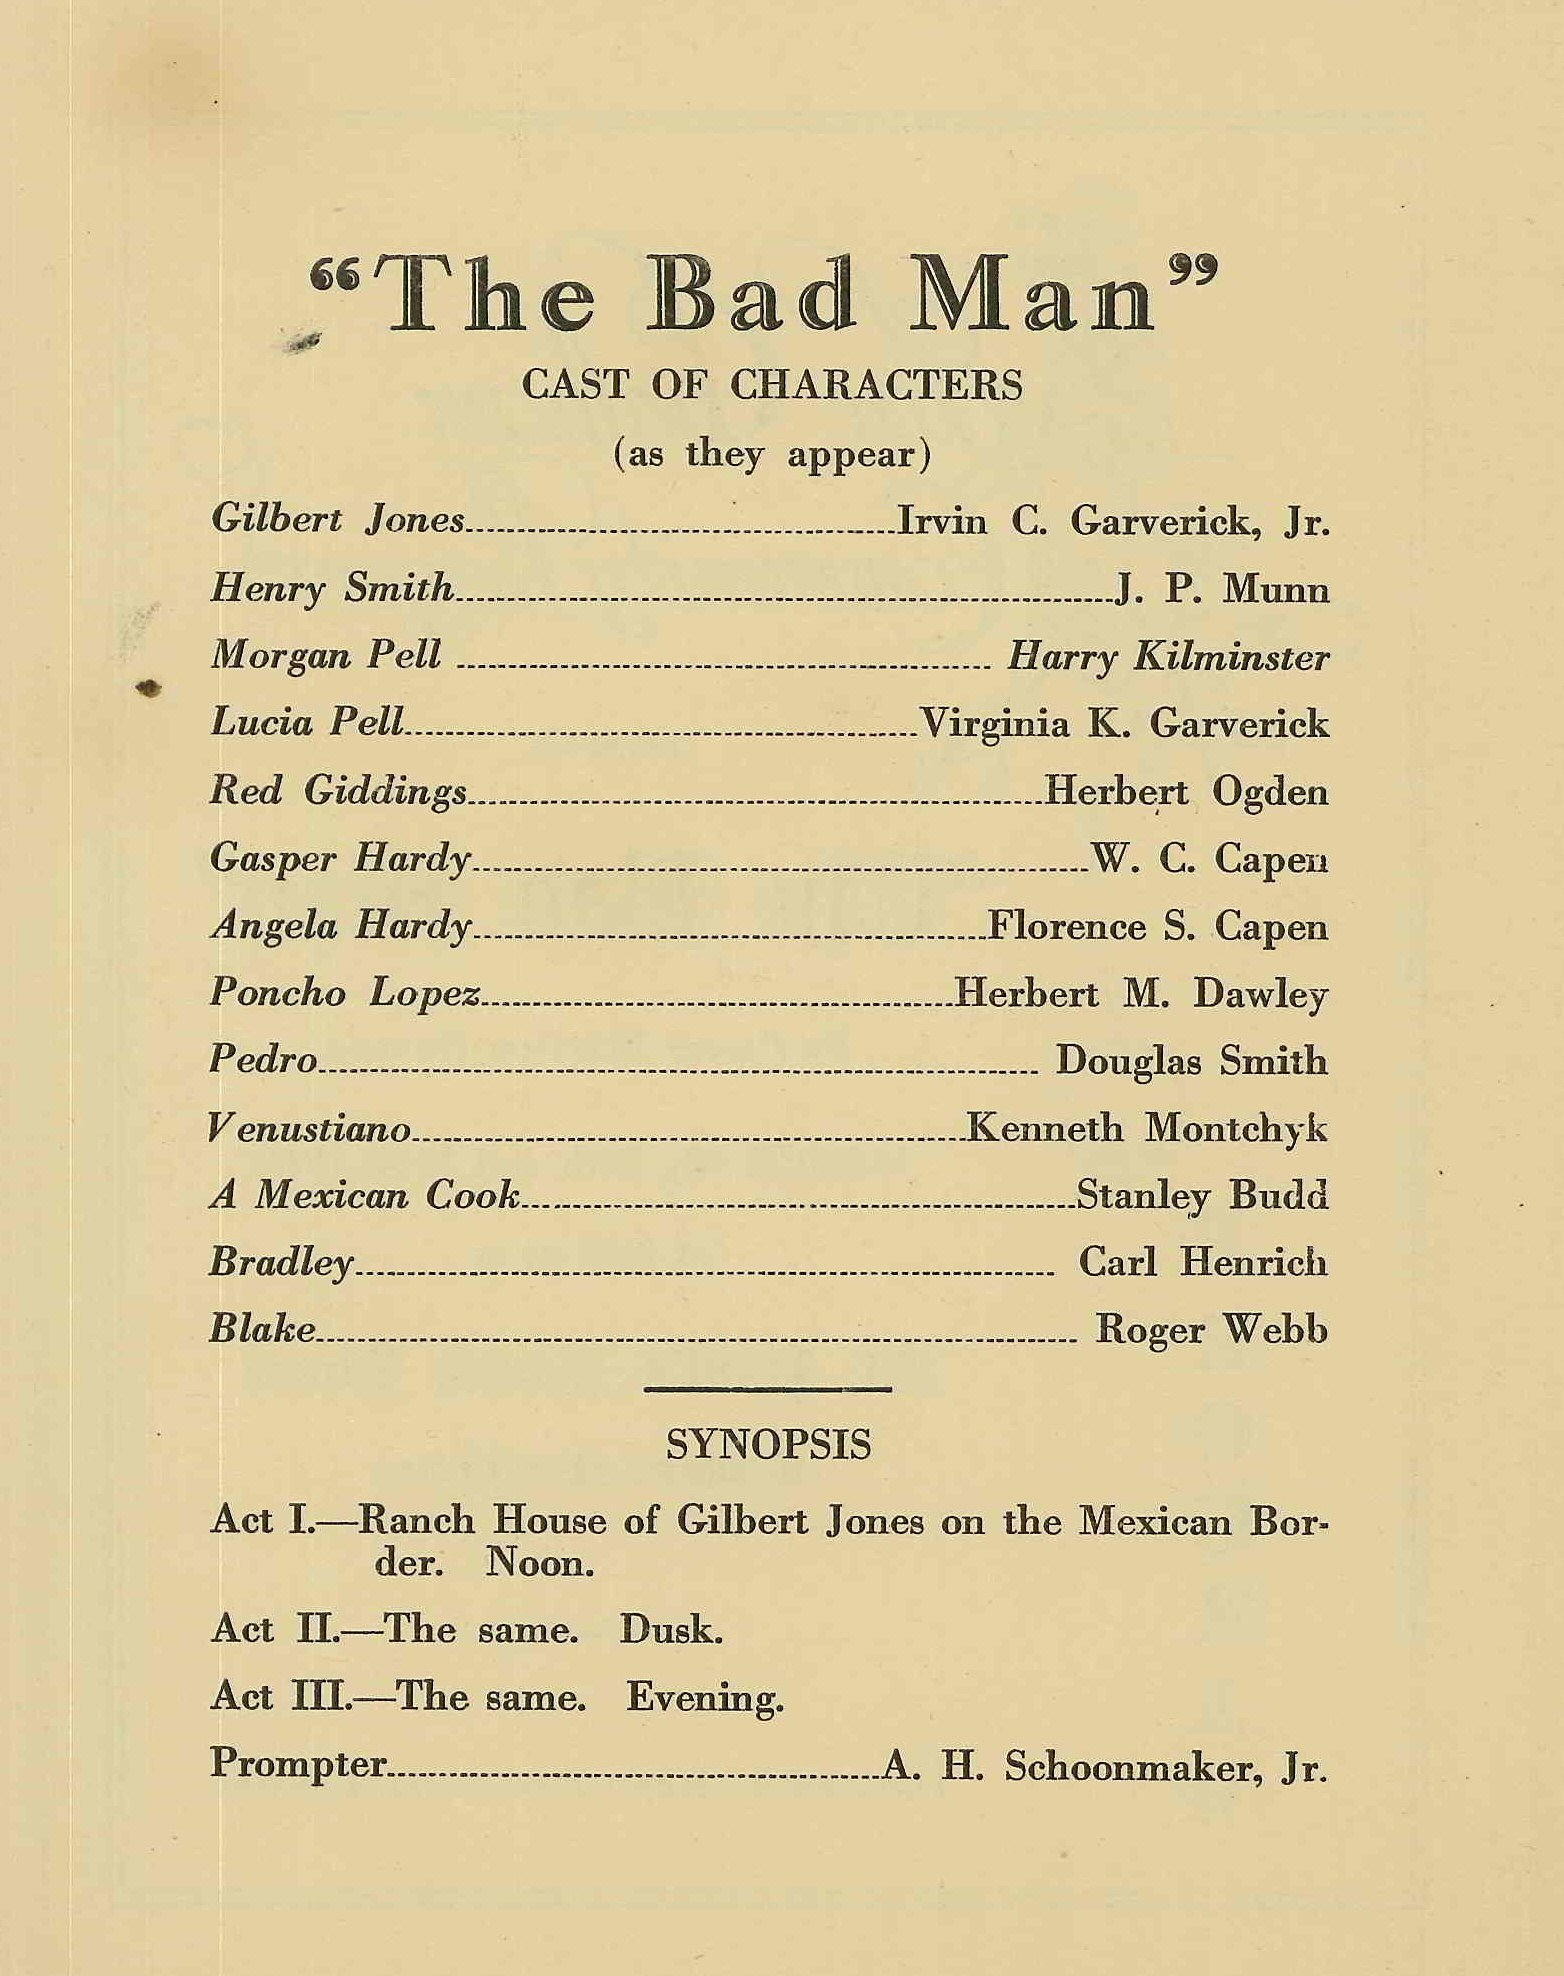 The Bad Man (1932)